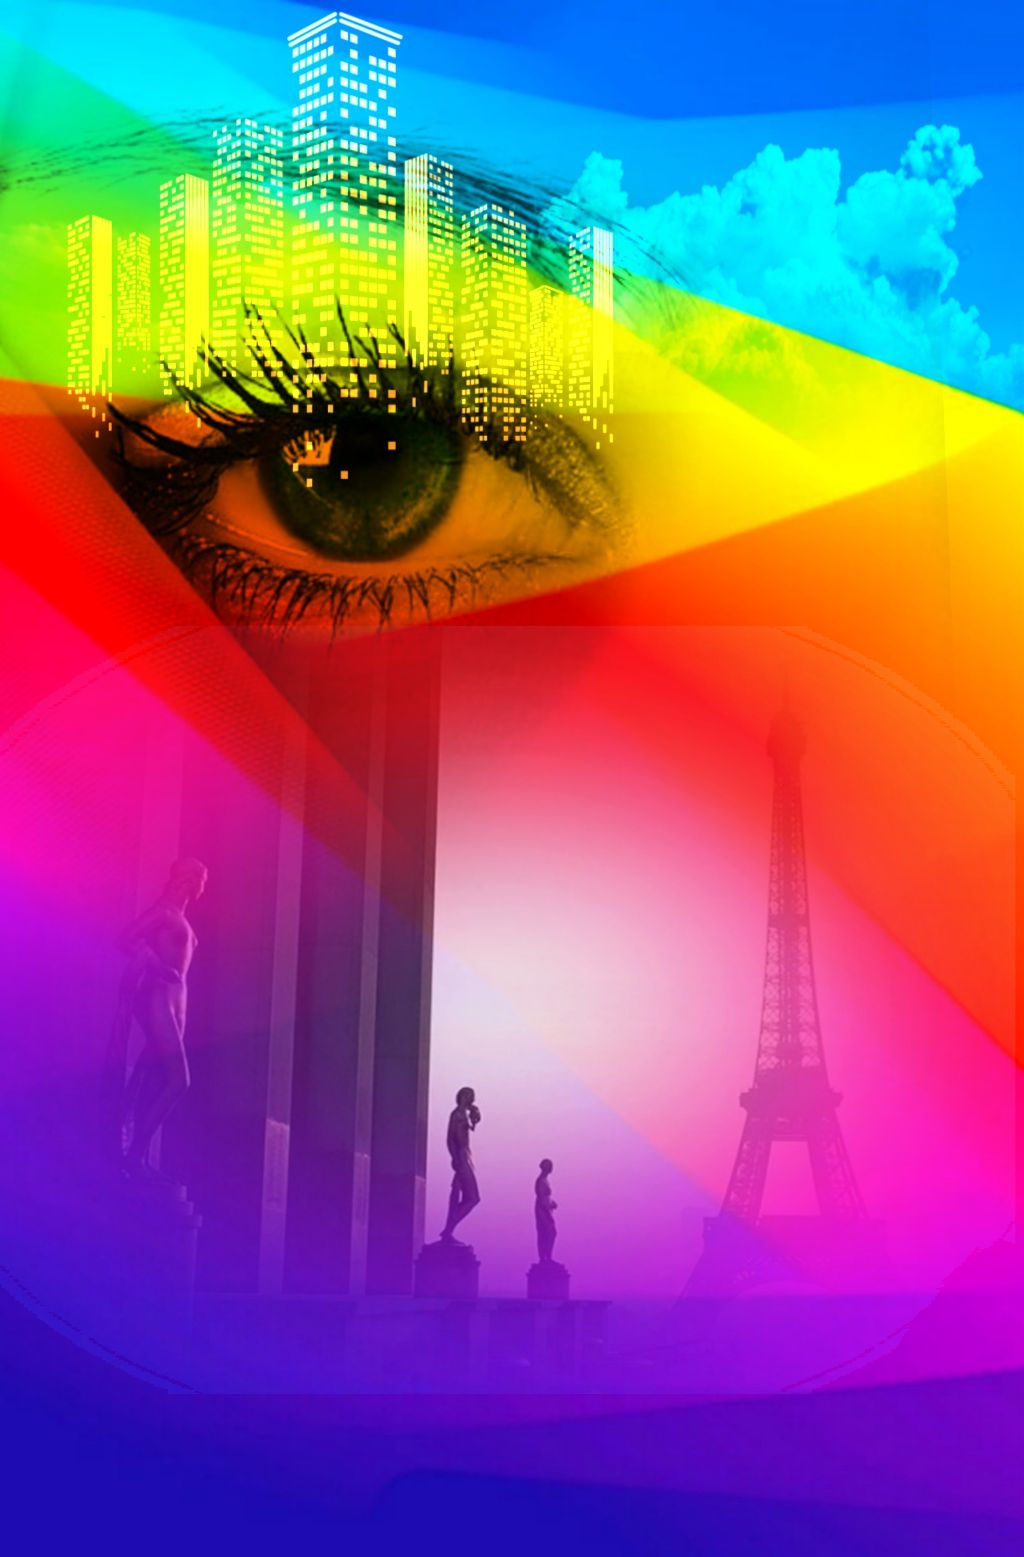 #freetoedit#eye#colorful#cityscape#cloudsandsky#watchers#horizons#myeditoffreetoedit#thanks for the fte